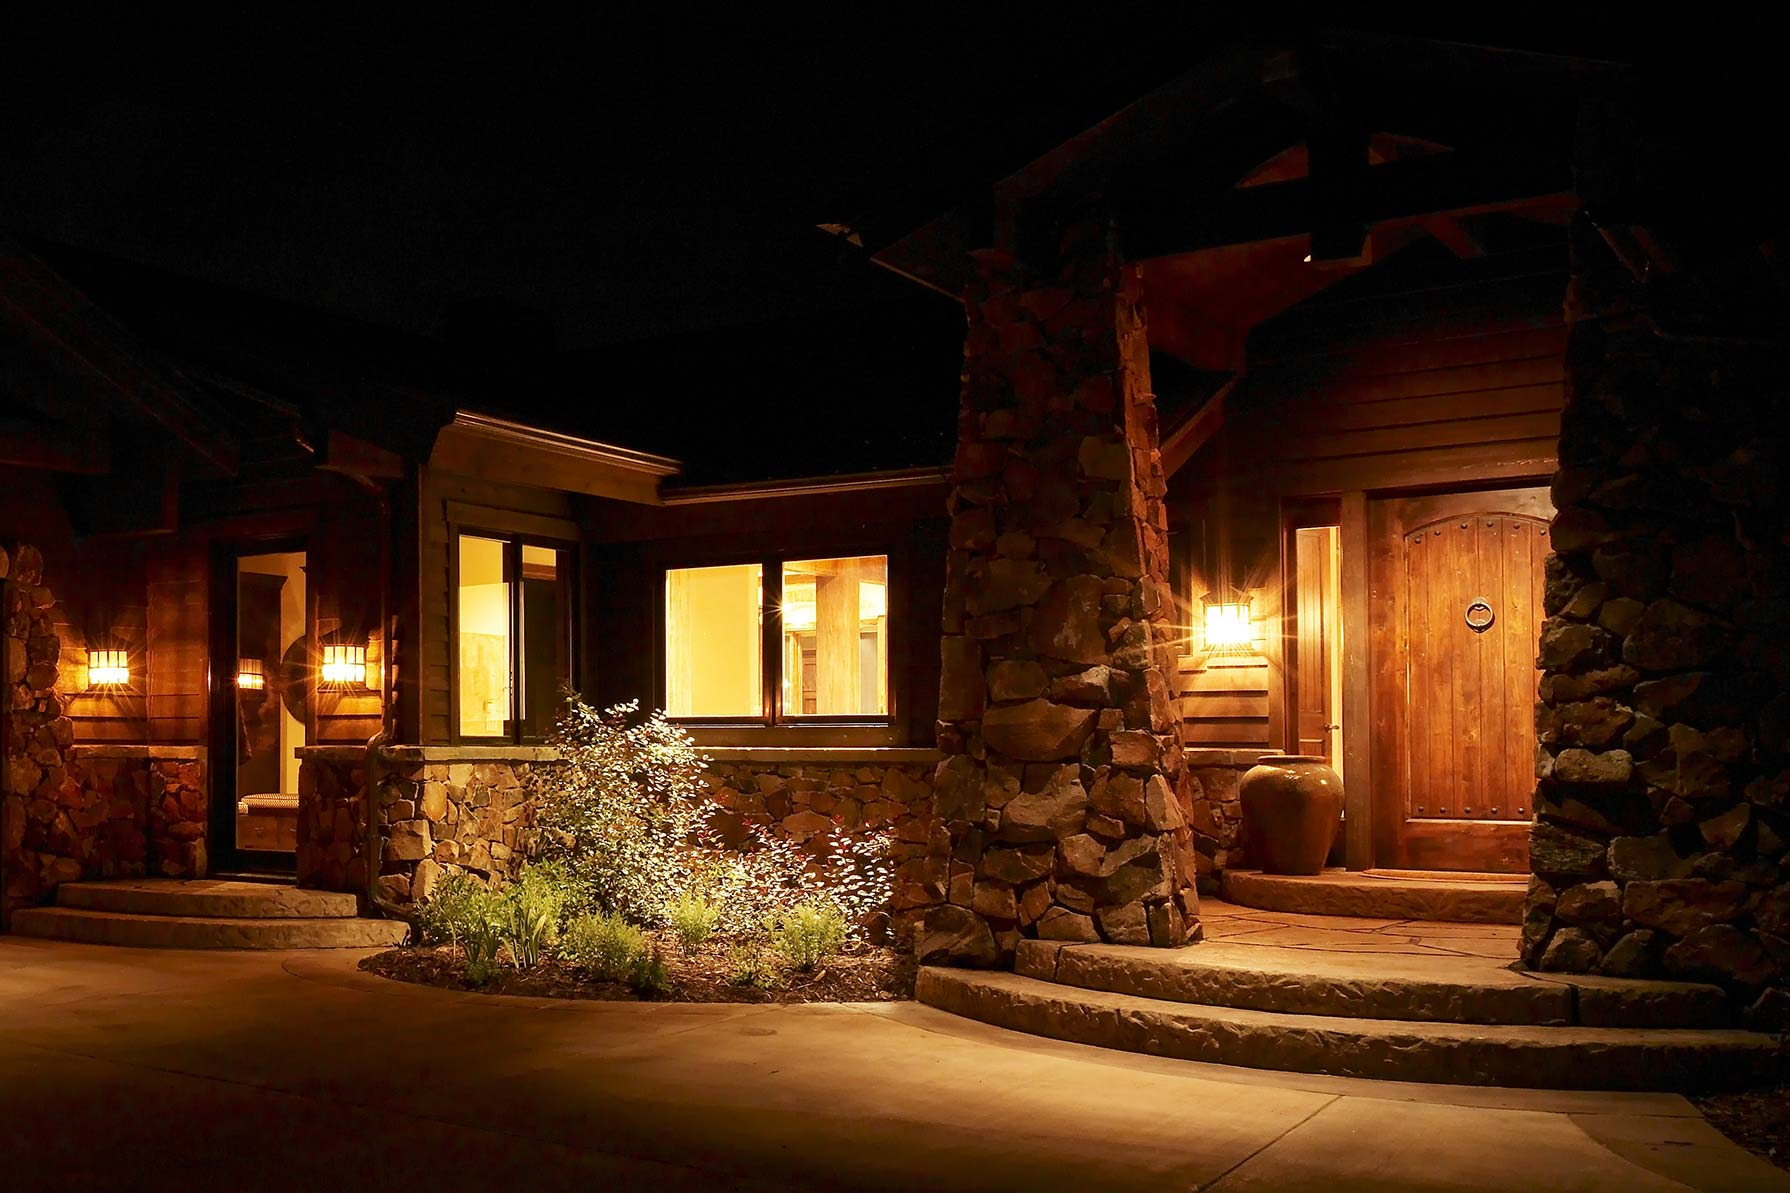 Lighting Basement Washroom Stairs: Outdoor Residential Security Lighting Ideas And Pictures